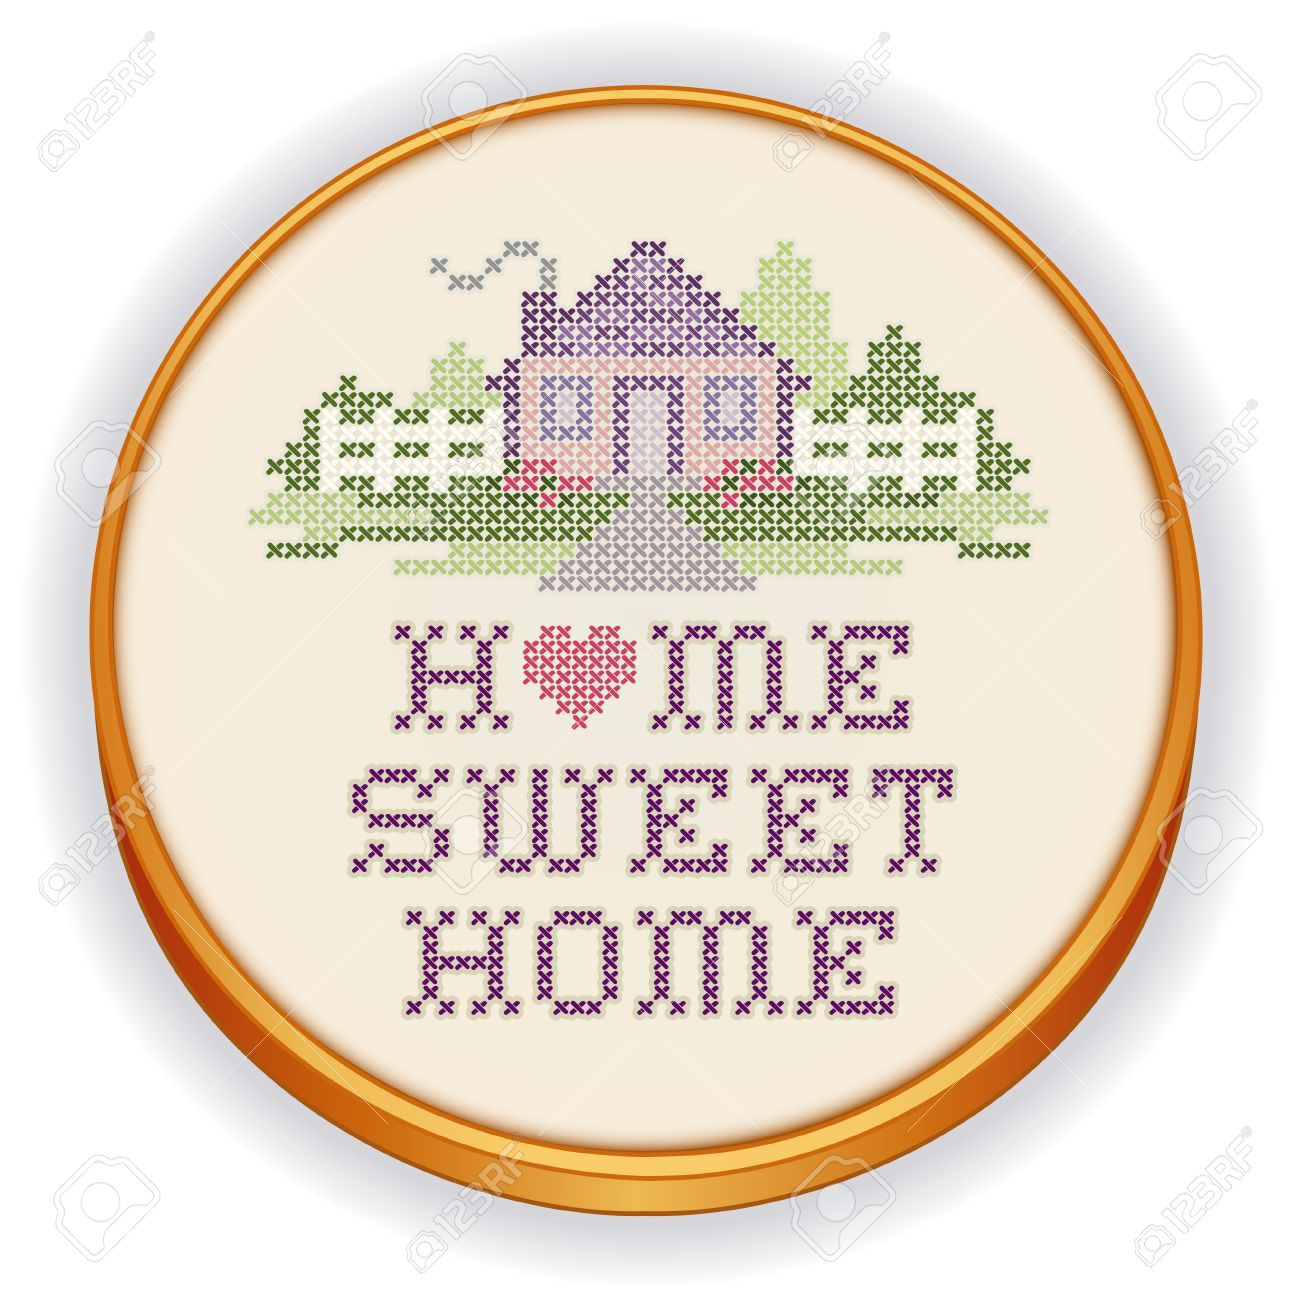 Home Sweet Home Vintage vintage embroidery, home sweet home royalty free cliparts, vectors